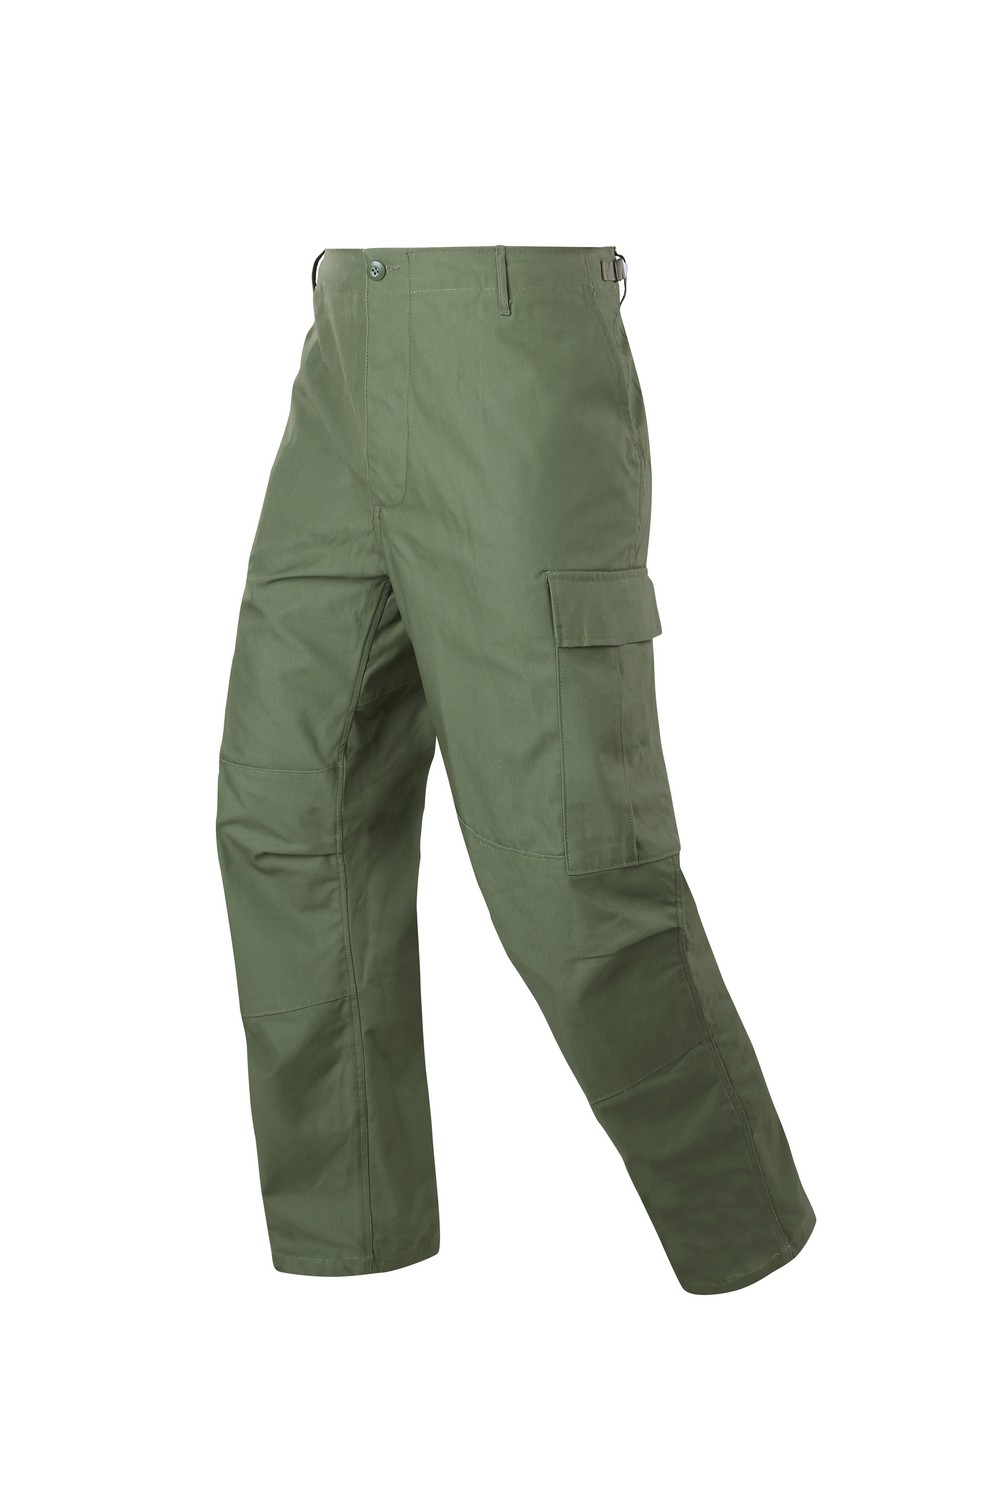 Pants Bdu Texar